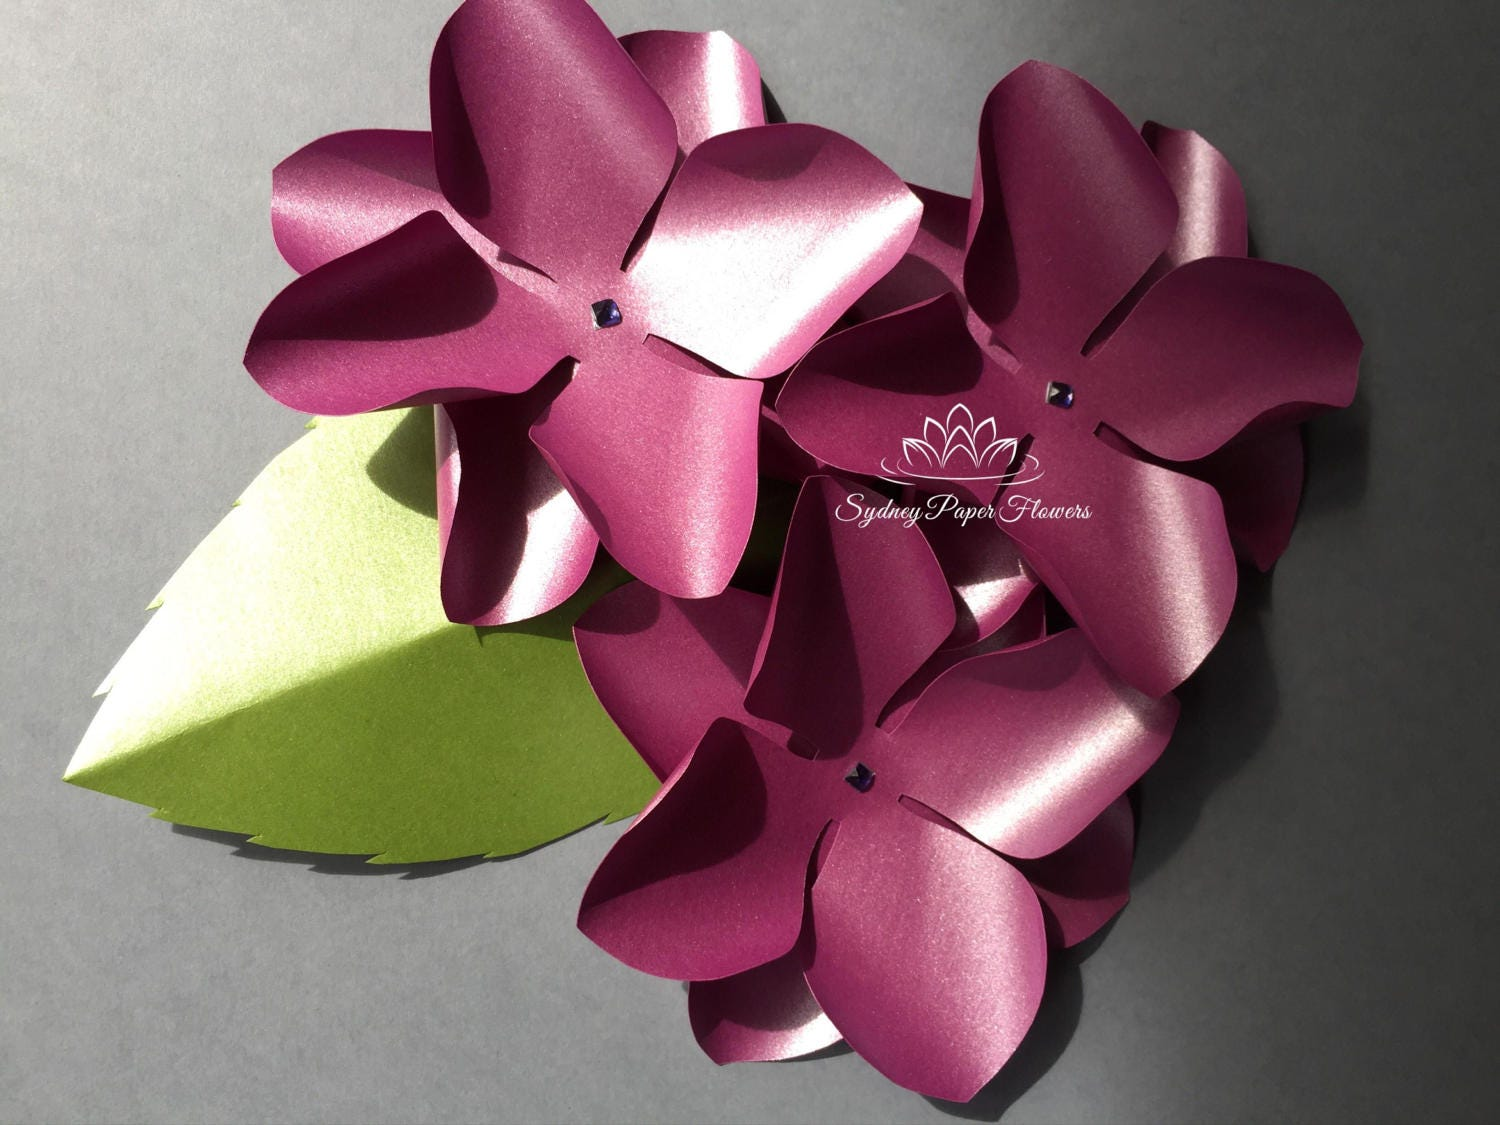 Hydrangea paper flower templates video tutorial svg pdf this is a digital file mightylinksfo Gallery